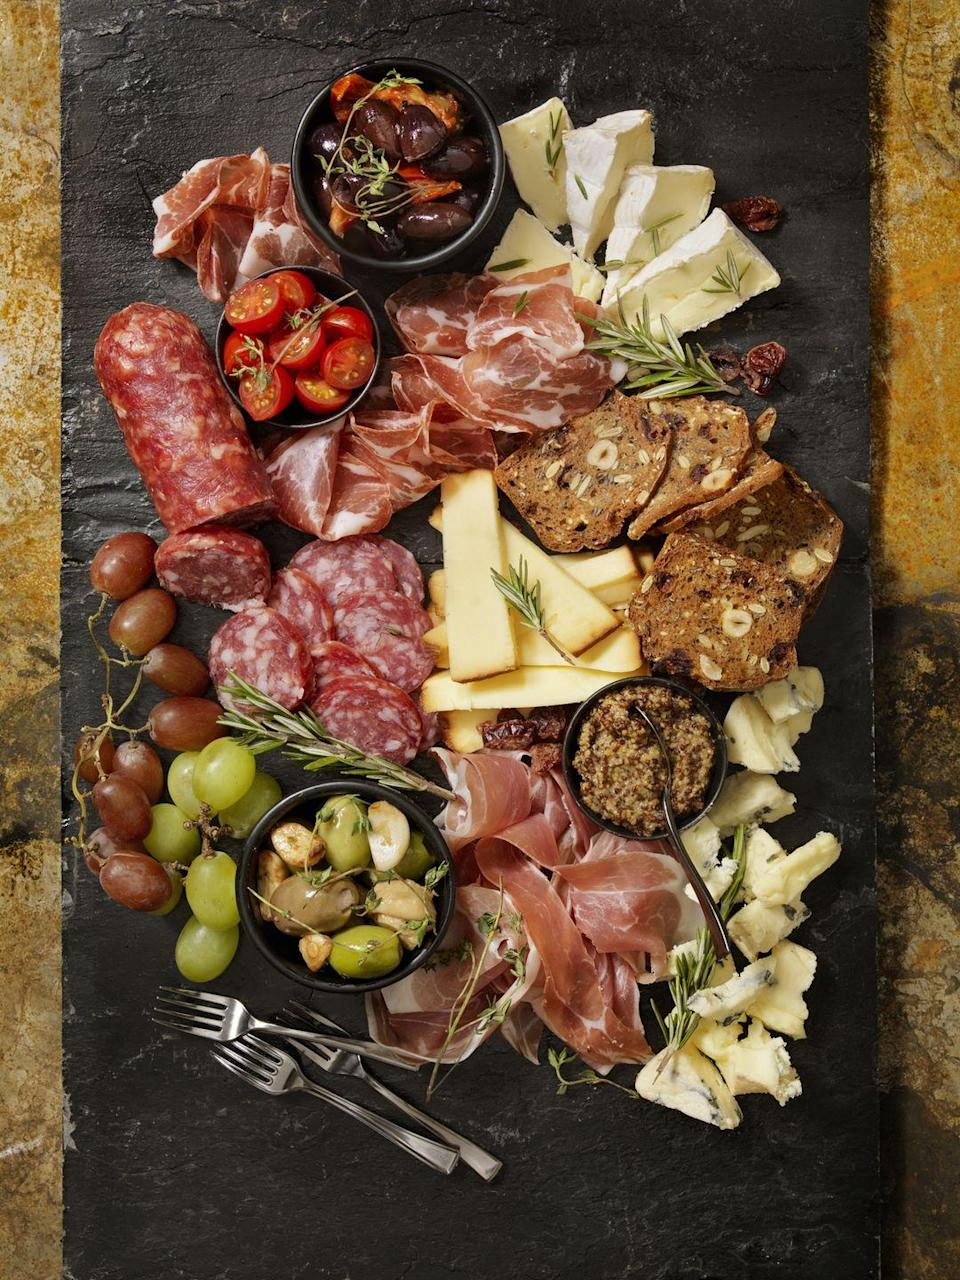 "<p>If you're not up to cooking, skip dinner and munch on delicious meats and cheeses instead. Design a gorgeous charcuterie board and serve with a bottle of wine for the best night in. (Or if dessert is more your thing, try a <a href=""https://www.thepioneerwoman.com/food-cooking/a34847673/hot-chocolate-board/"" rel=""nofollow noopener"" target=""_blank"" data-ylk=""slk:hot chocolate board"" class=""link rapid-noclick-resp"">hot chocolate board</a>!) </p><p><a class=""link rapid-noclick-resp"" href=""https://go.redirectingat.com?id=74968X1596630&url=https%3A%2F%2Fwww.walmart.com%2Fsearch%2F%3Fquery%3Dcheese%2Bboard&sref=https%3A%2F%2Fwww.thepioneerwoman.com%2Fholidays-celebrations%2Fg35118424%2Fthings-to-do-on-valentines-day%2F"" rel=""nofollow noopener"" target=""_blank"" data-ylk=""slk:SHOP CHEESE BOARDS"">SHOP CHEESE BOARDS</a></p>"